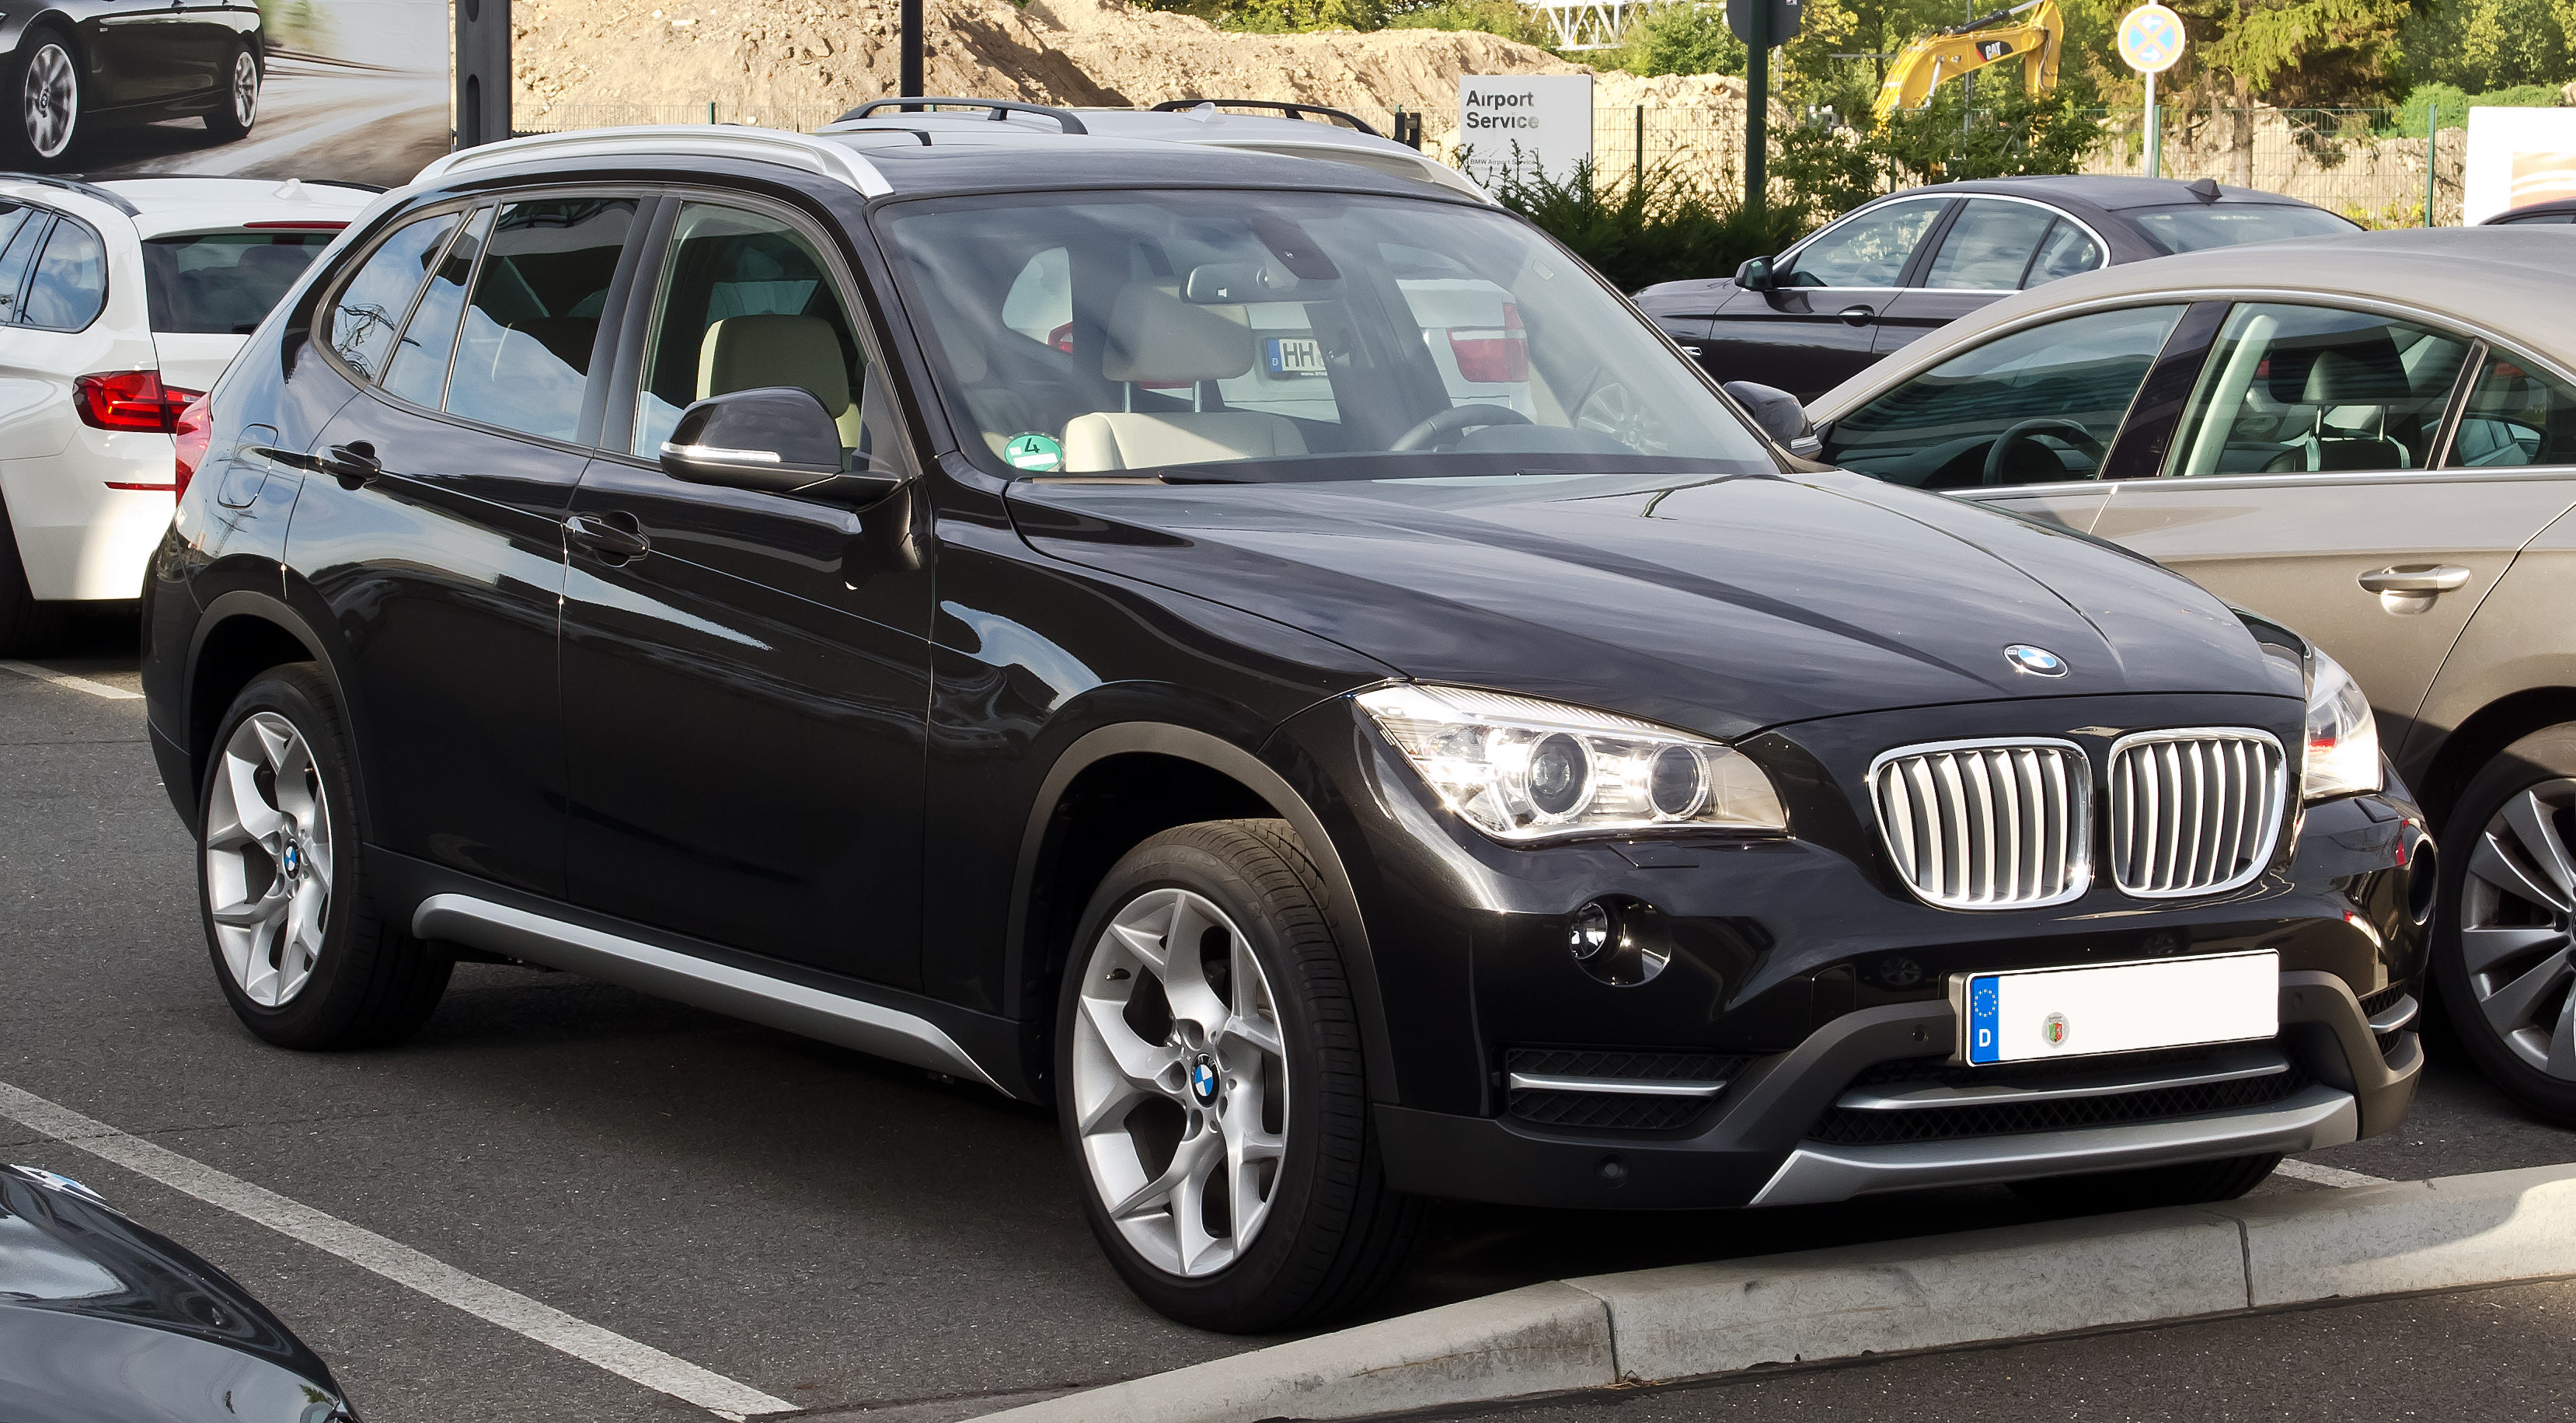 fichier bmw x1 e84 facelift frontansicht 2 september 2012 d wikip dia. Black Bedroom Furniture Sets. Home Design Ideas